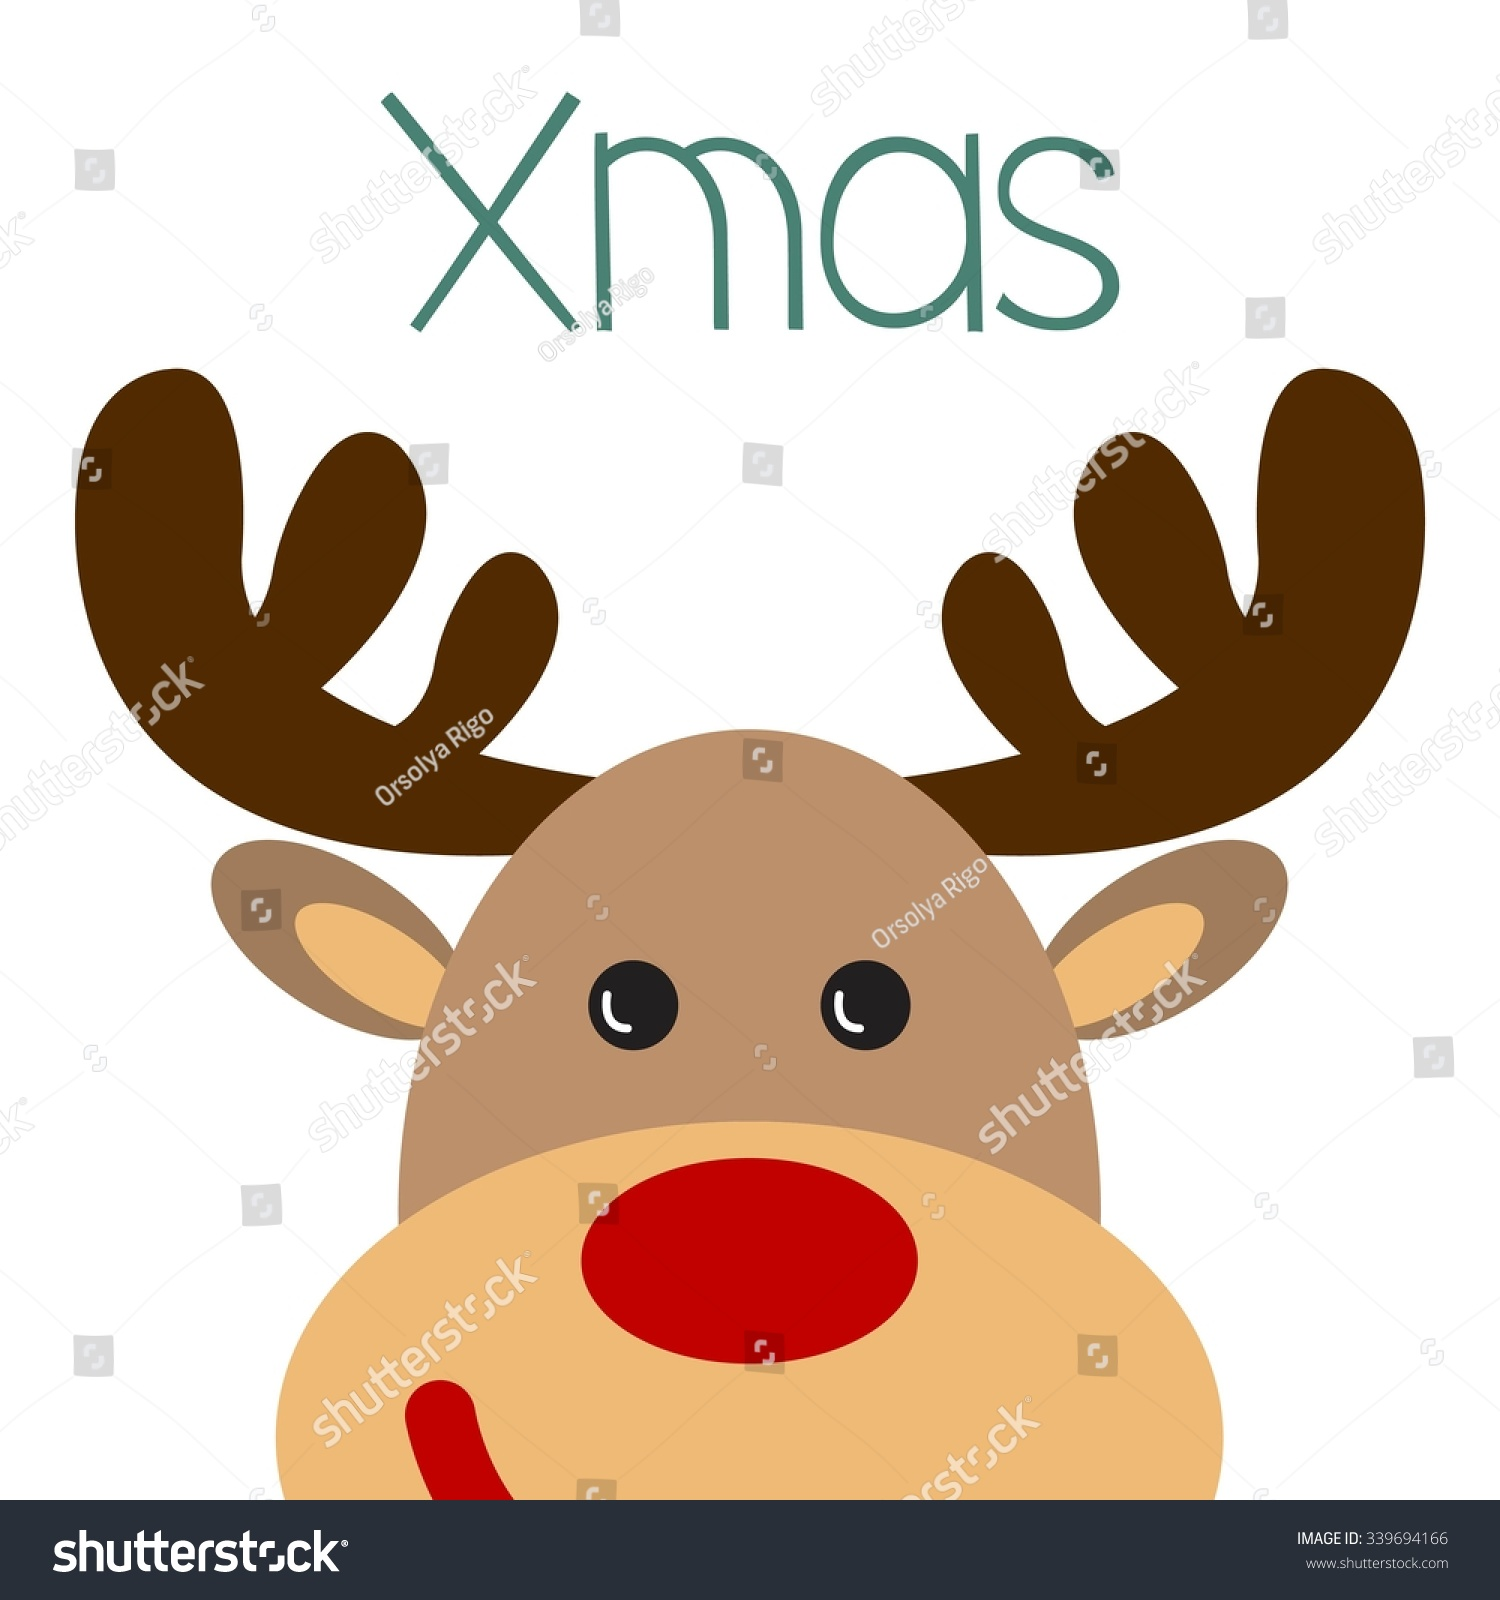 Uncategorized Raindeer Face christmas poster reindeer face stock vector with xmas inscription illustration